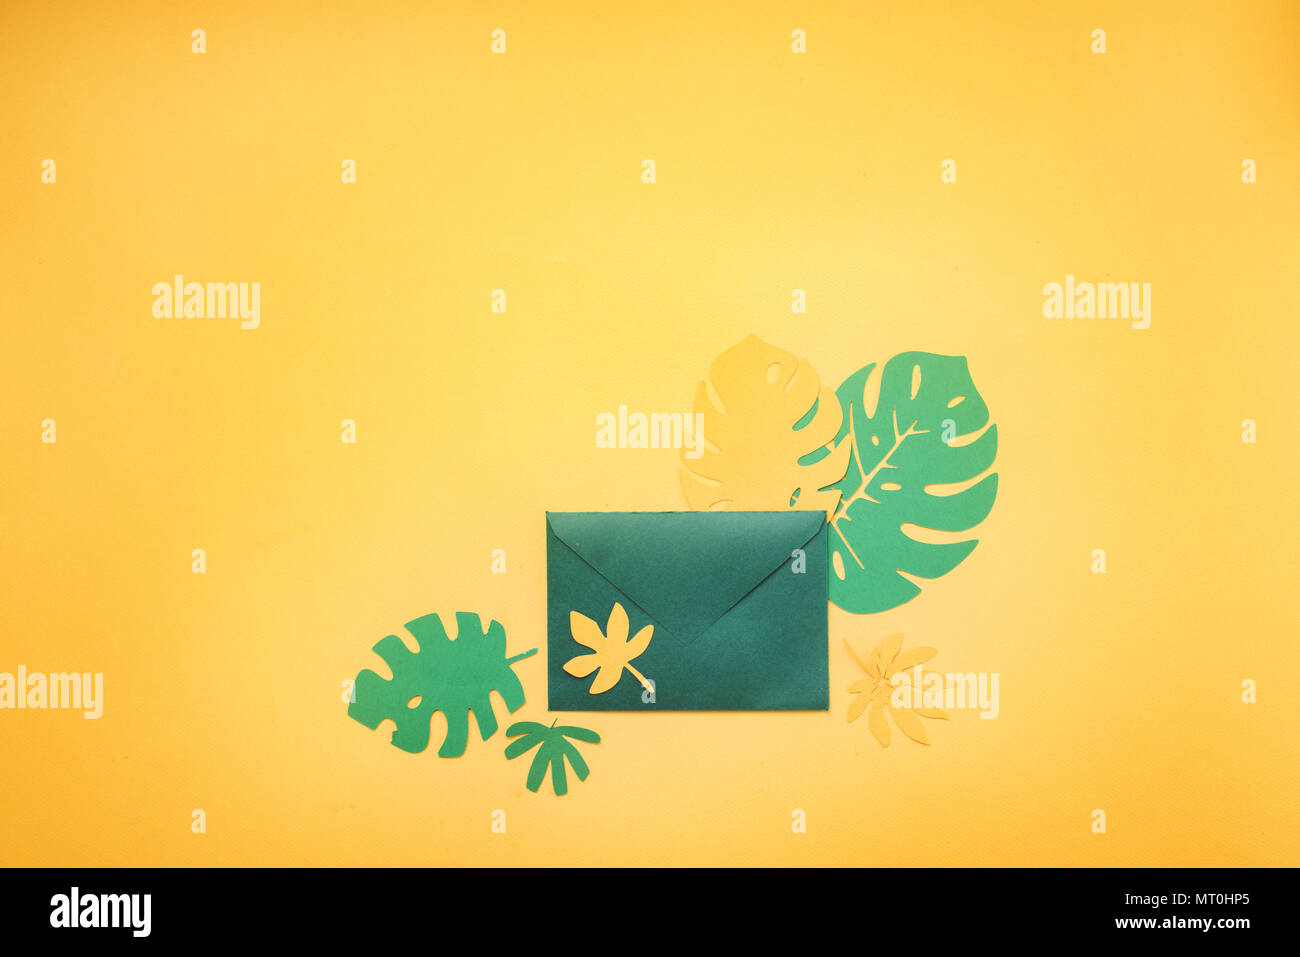 green invitation envelope with tropical leaves on a bright yellow